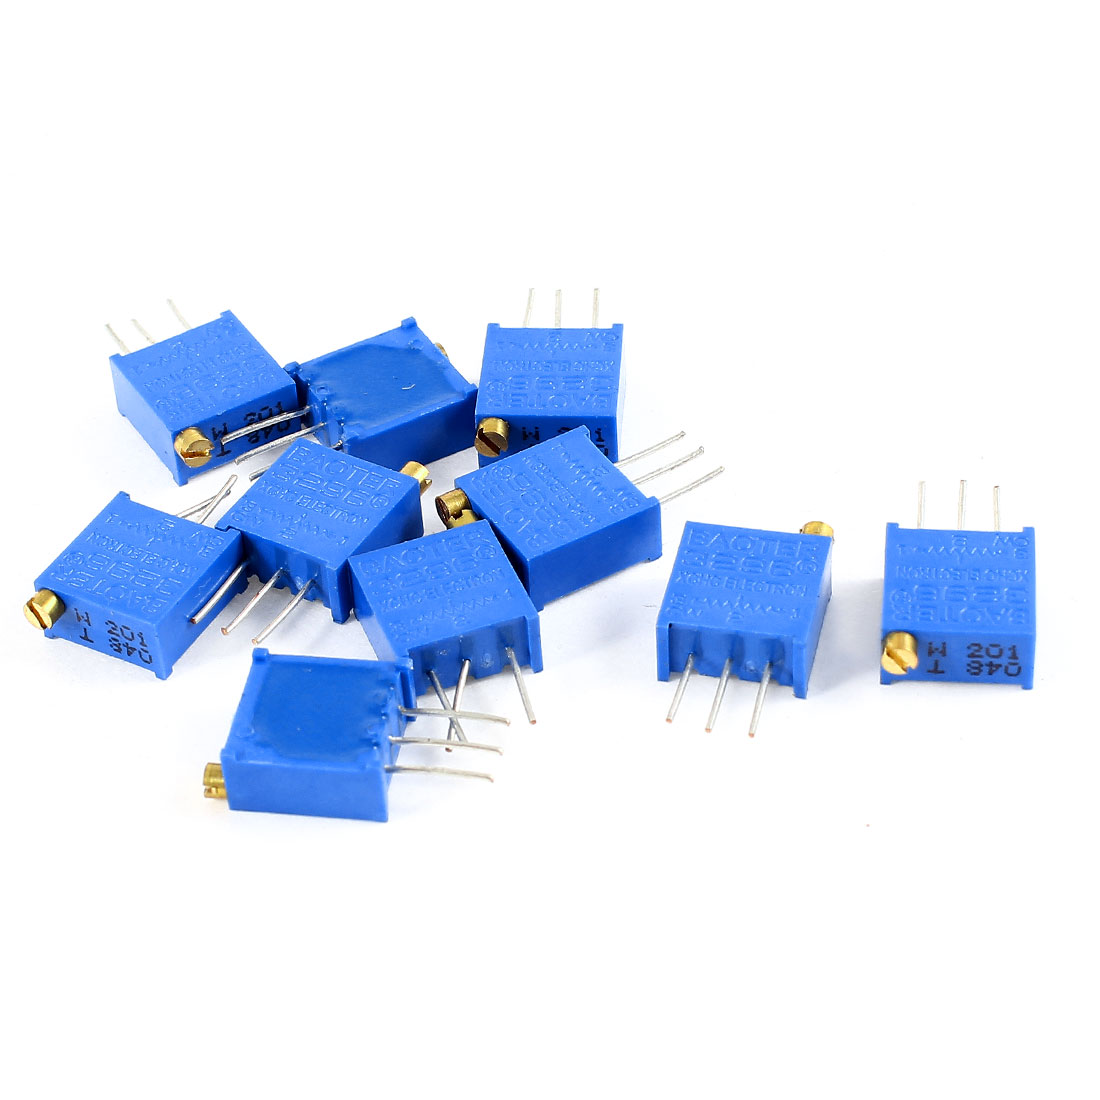 10Pcs 3296W-201 200 ohm 3 Pins High Precision Adjustable Resistor Trim Pot Potentiometer Trimmer